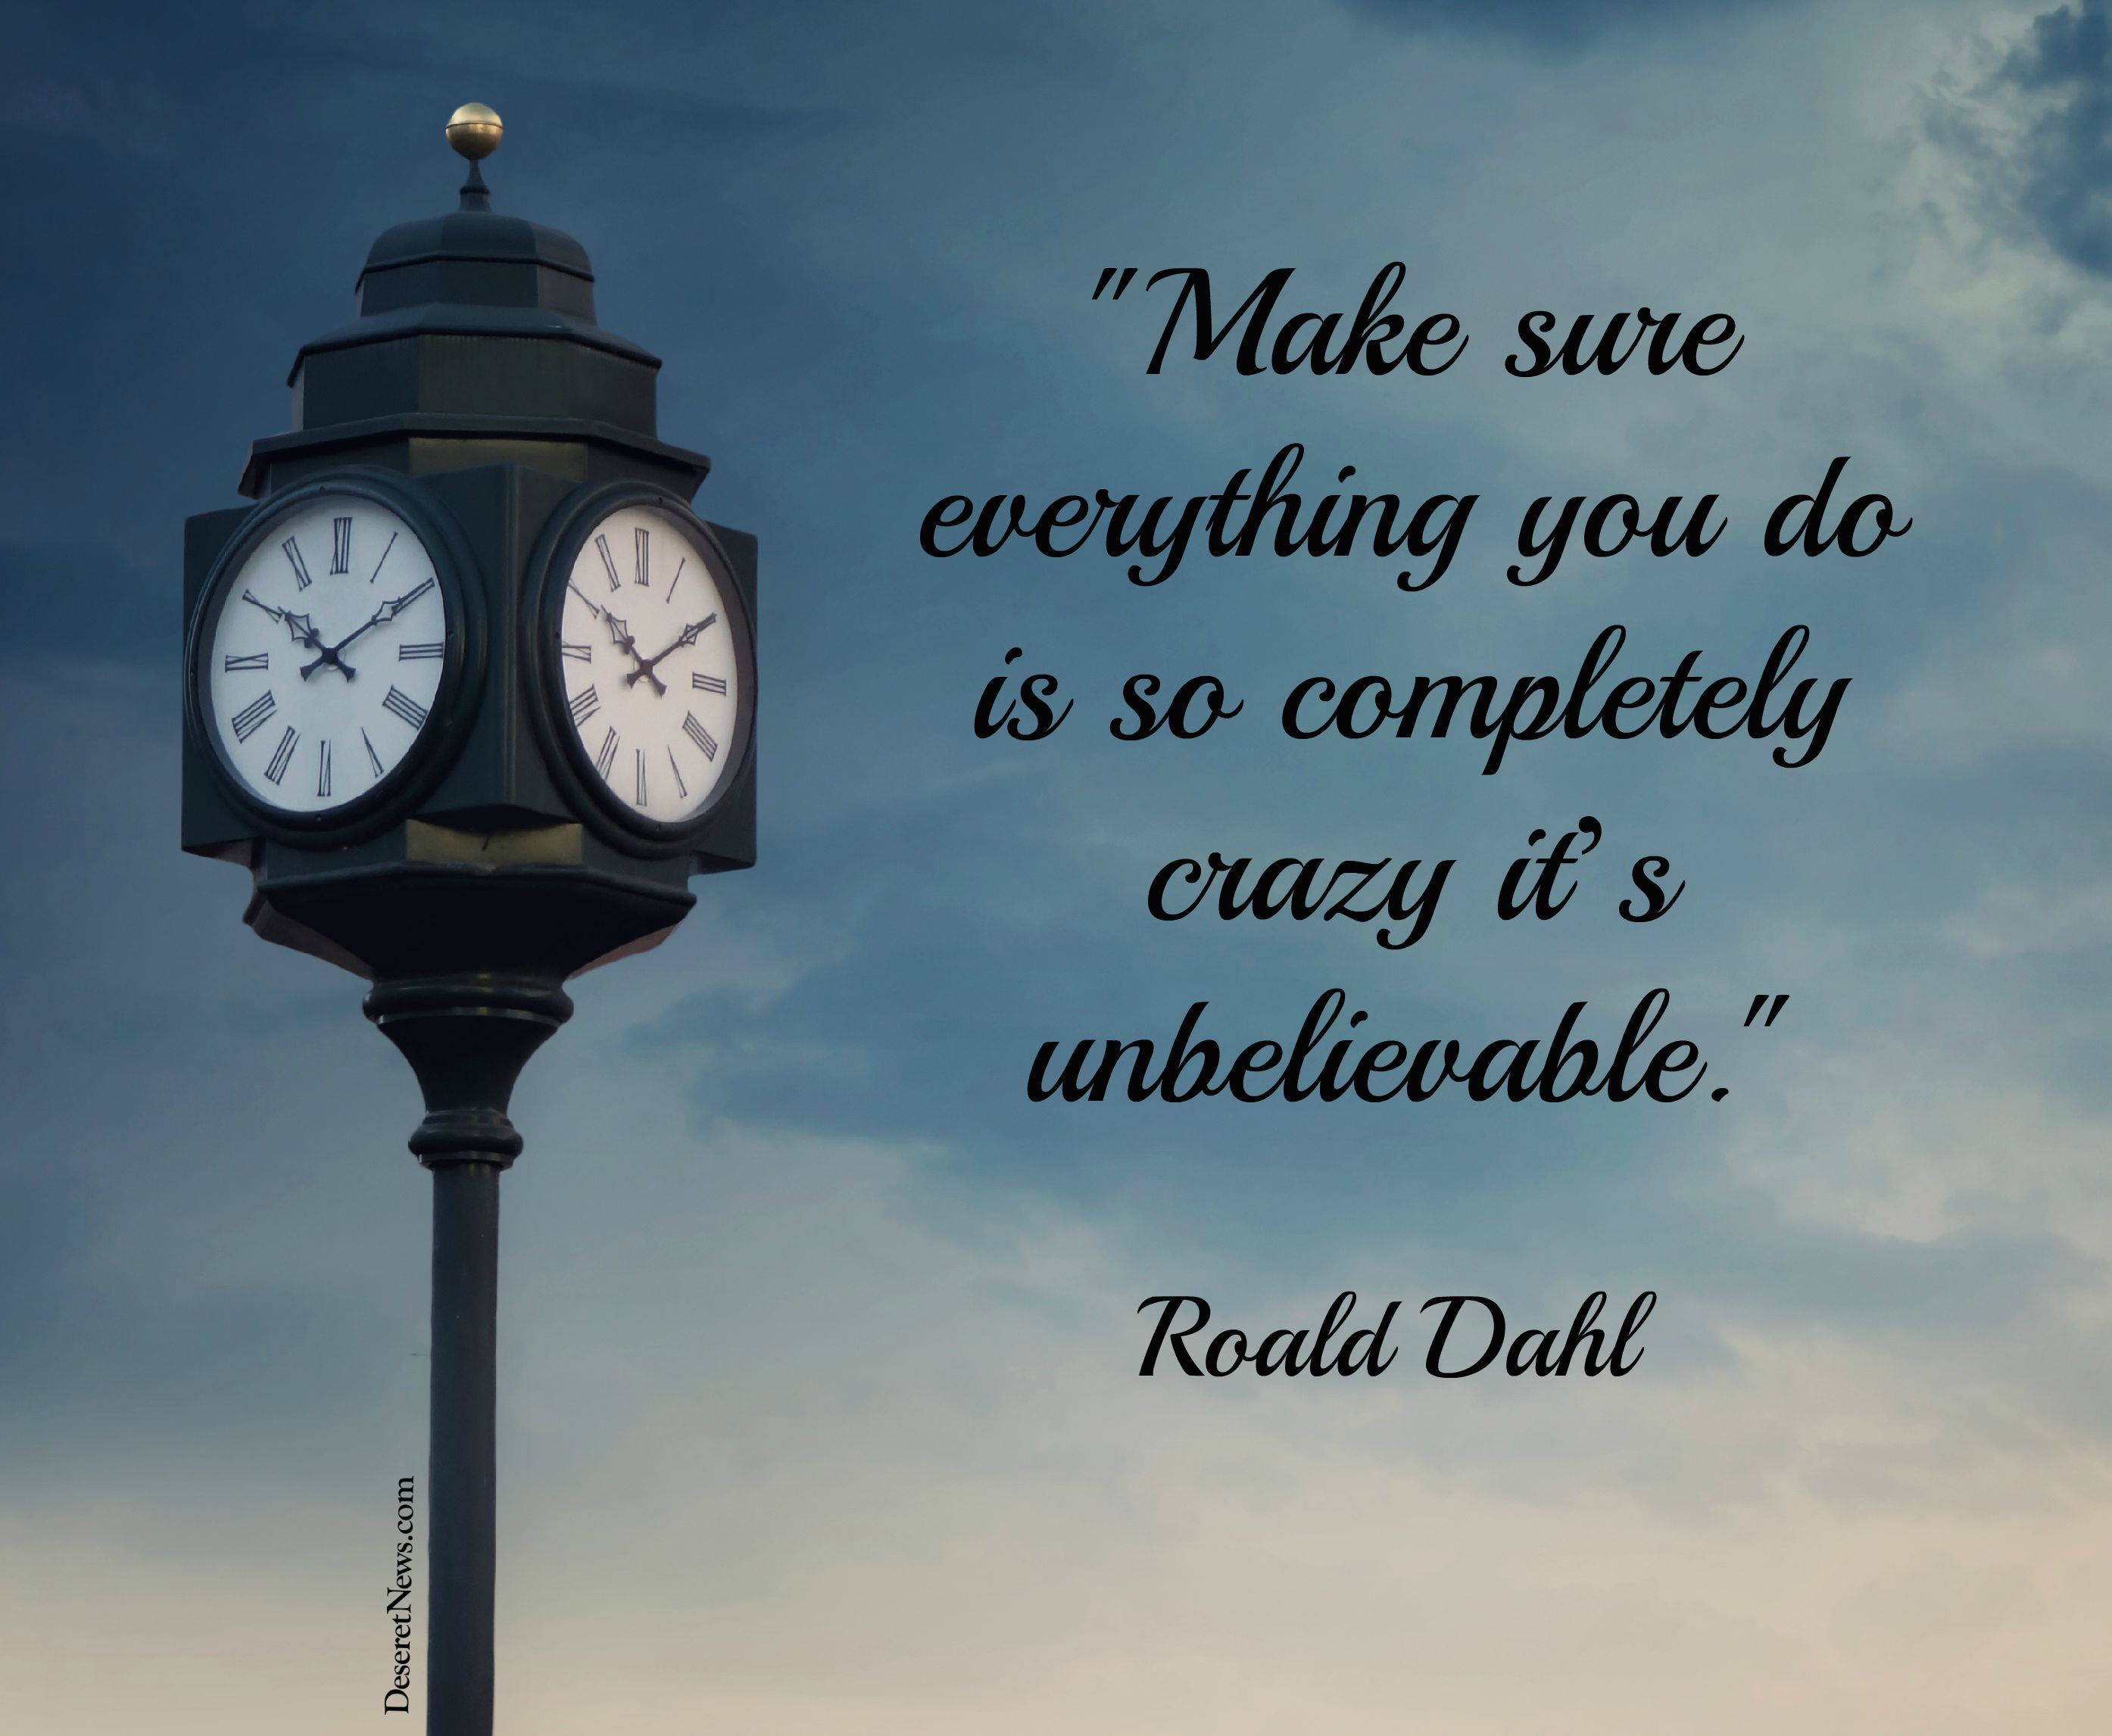 20 inspiring Roald Dahl quotes from 'Charlie and the